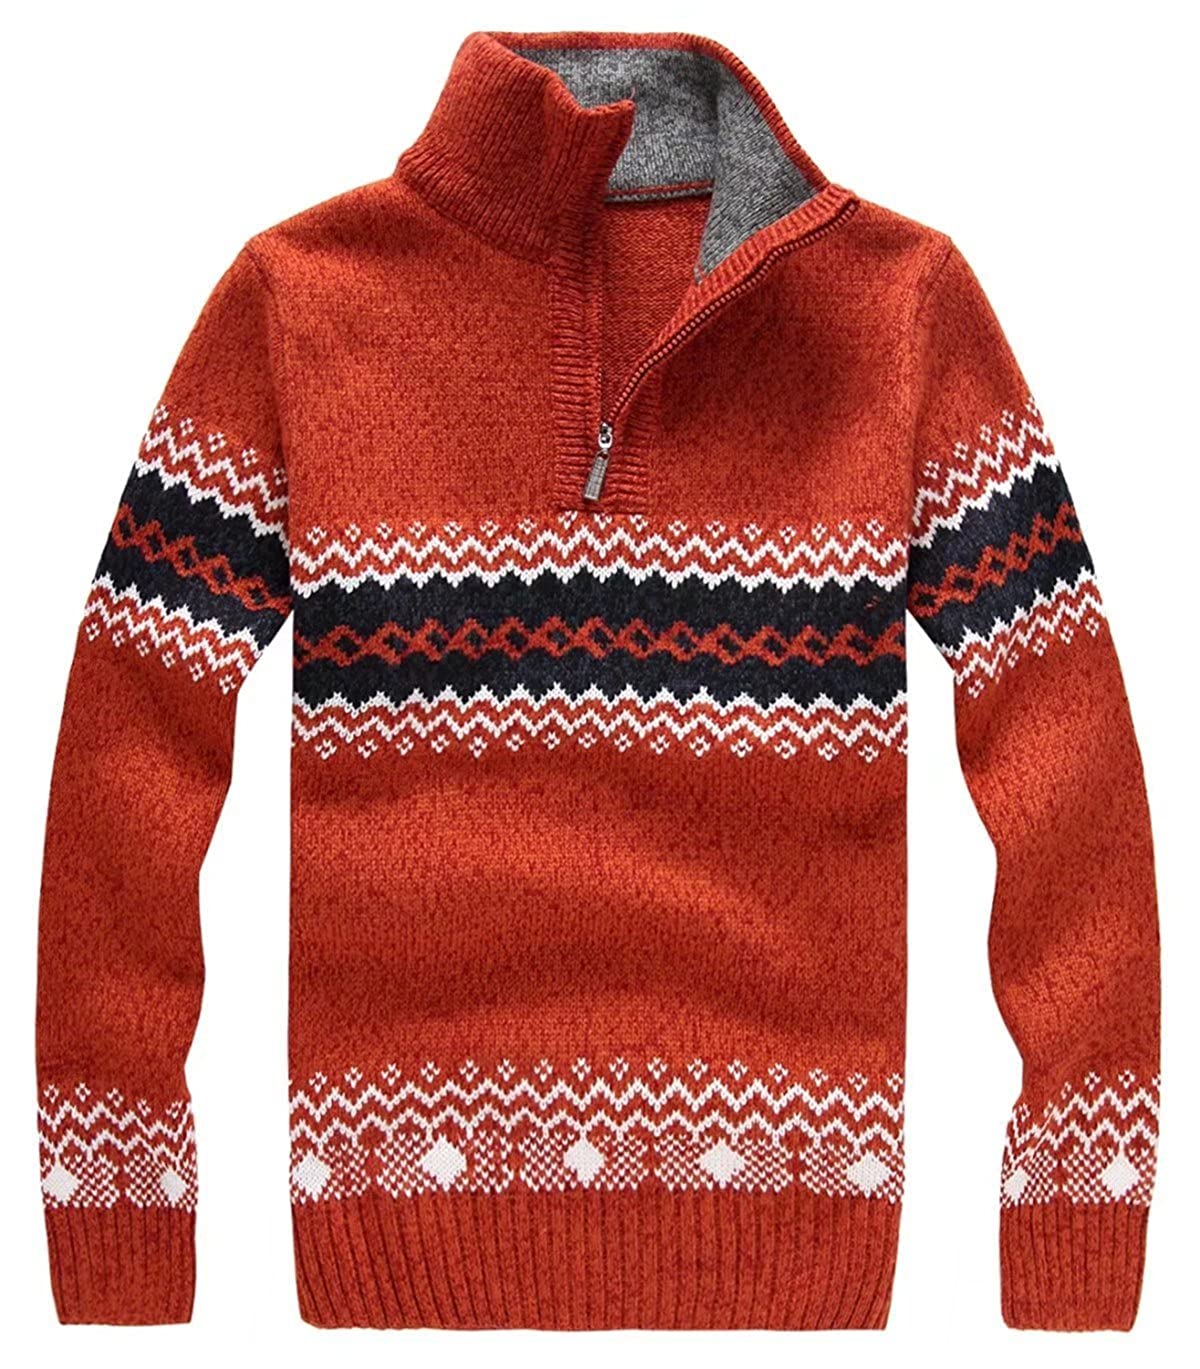 EMAOR Mens Stylish Quarter Zip Knit Sweaters Pullover